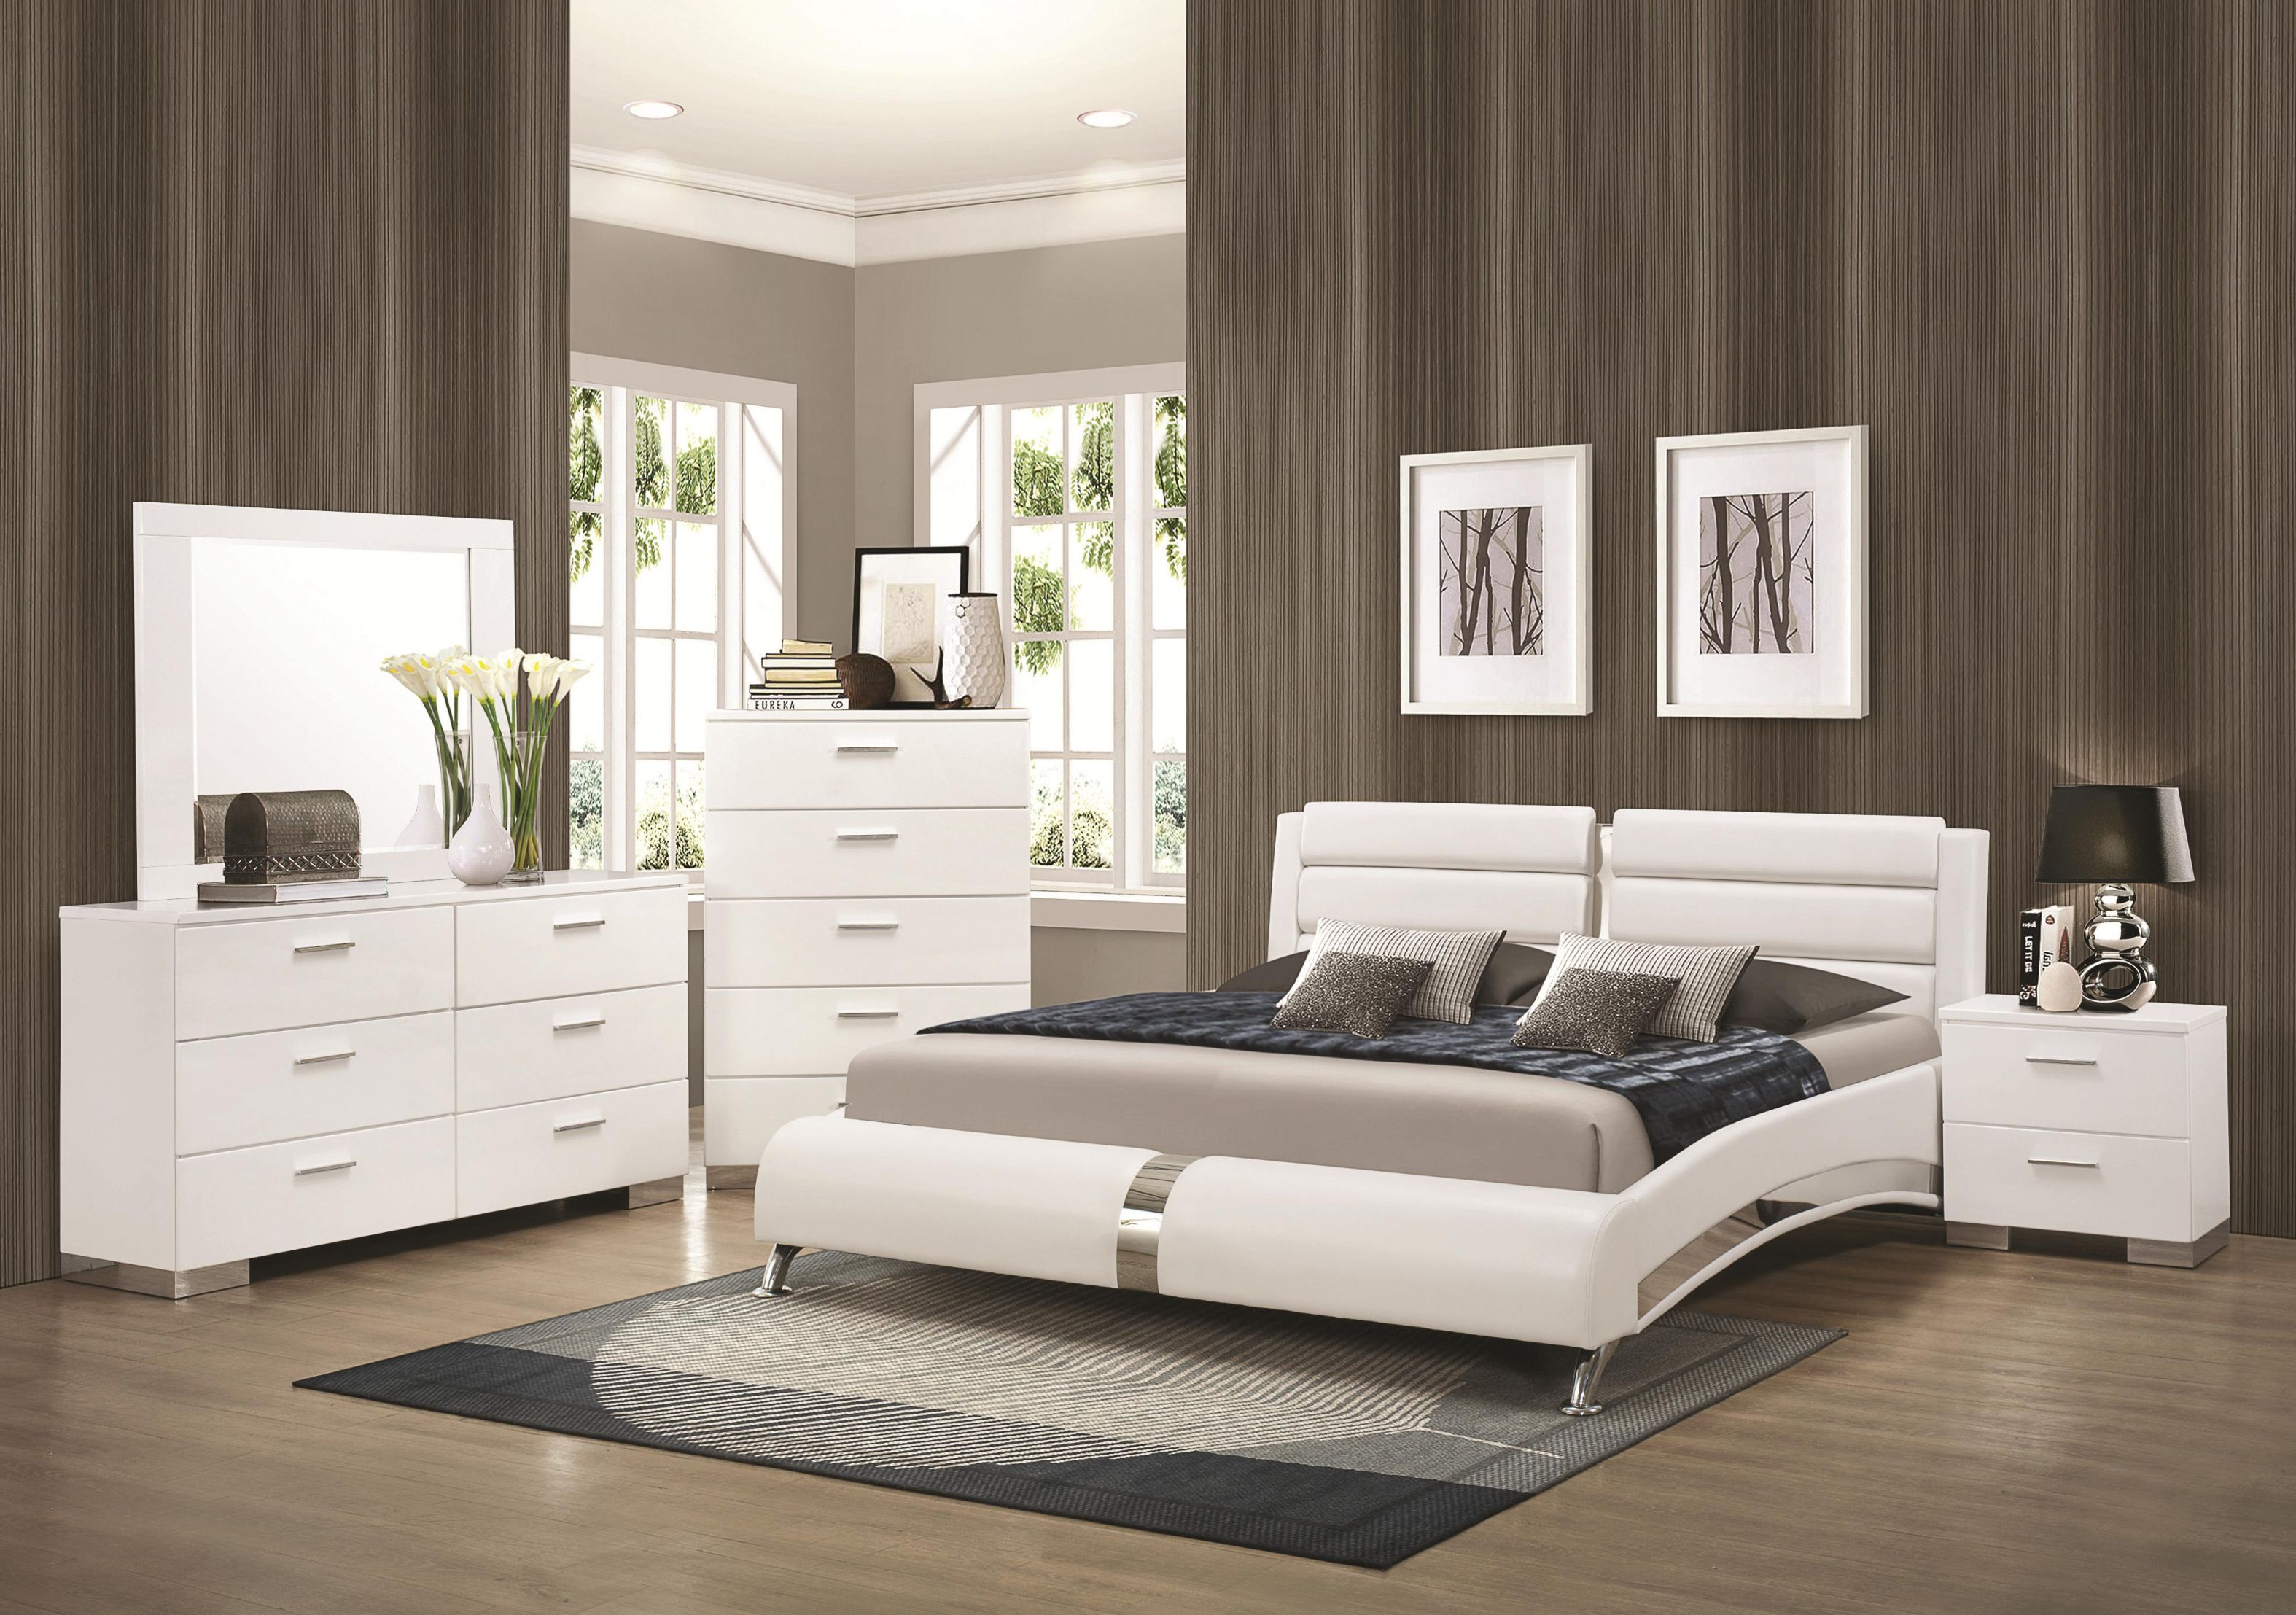 Beds Co Furniture Contemporary Bedroom Suite Co 300345